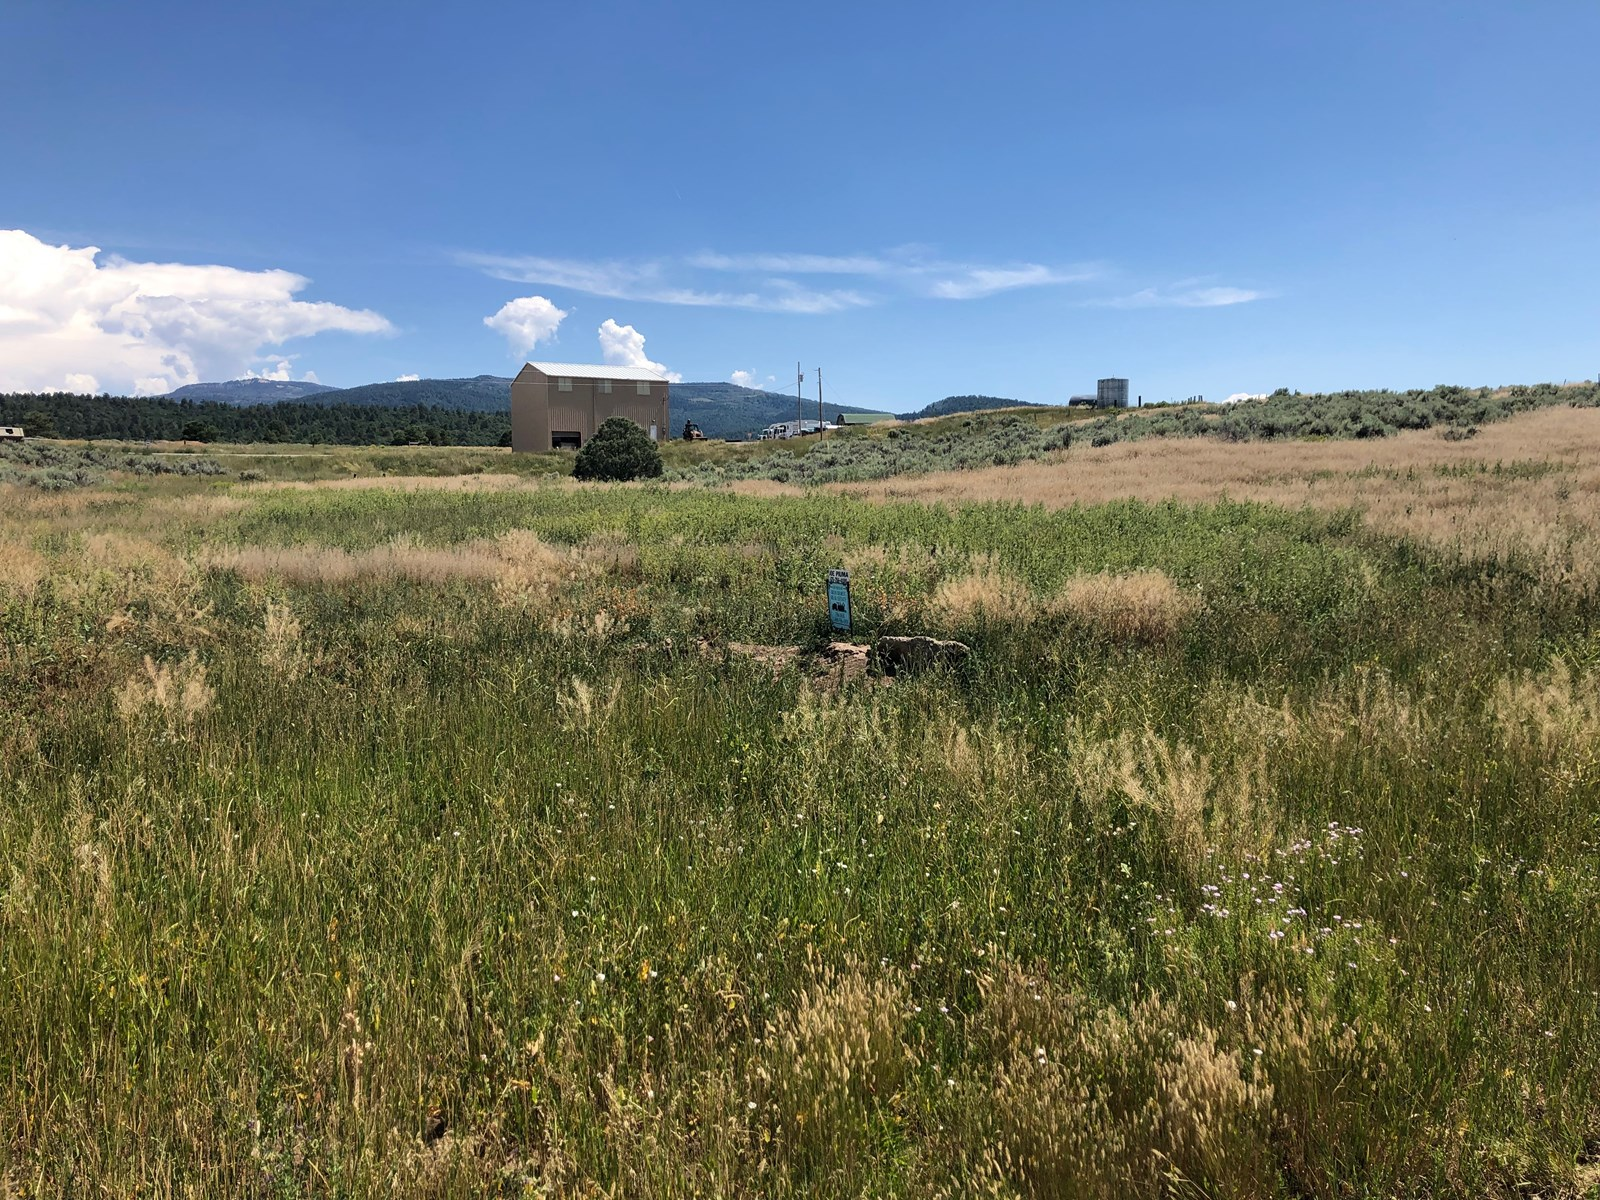 Land for sale South of Chama New Mexico In Tierra Amarilla